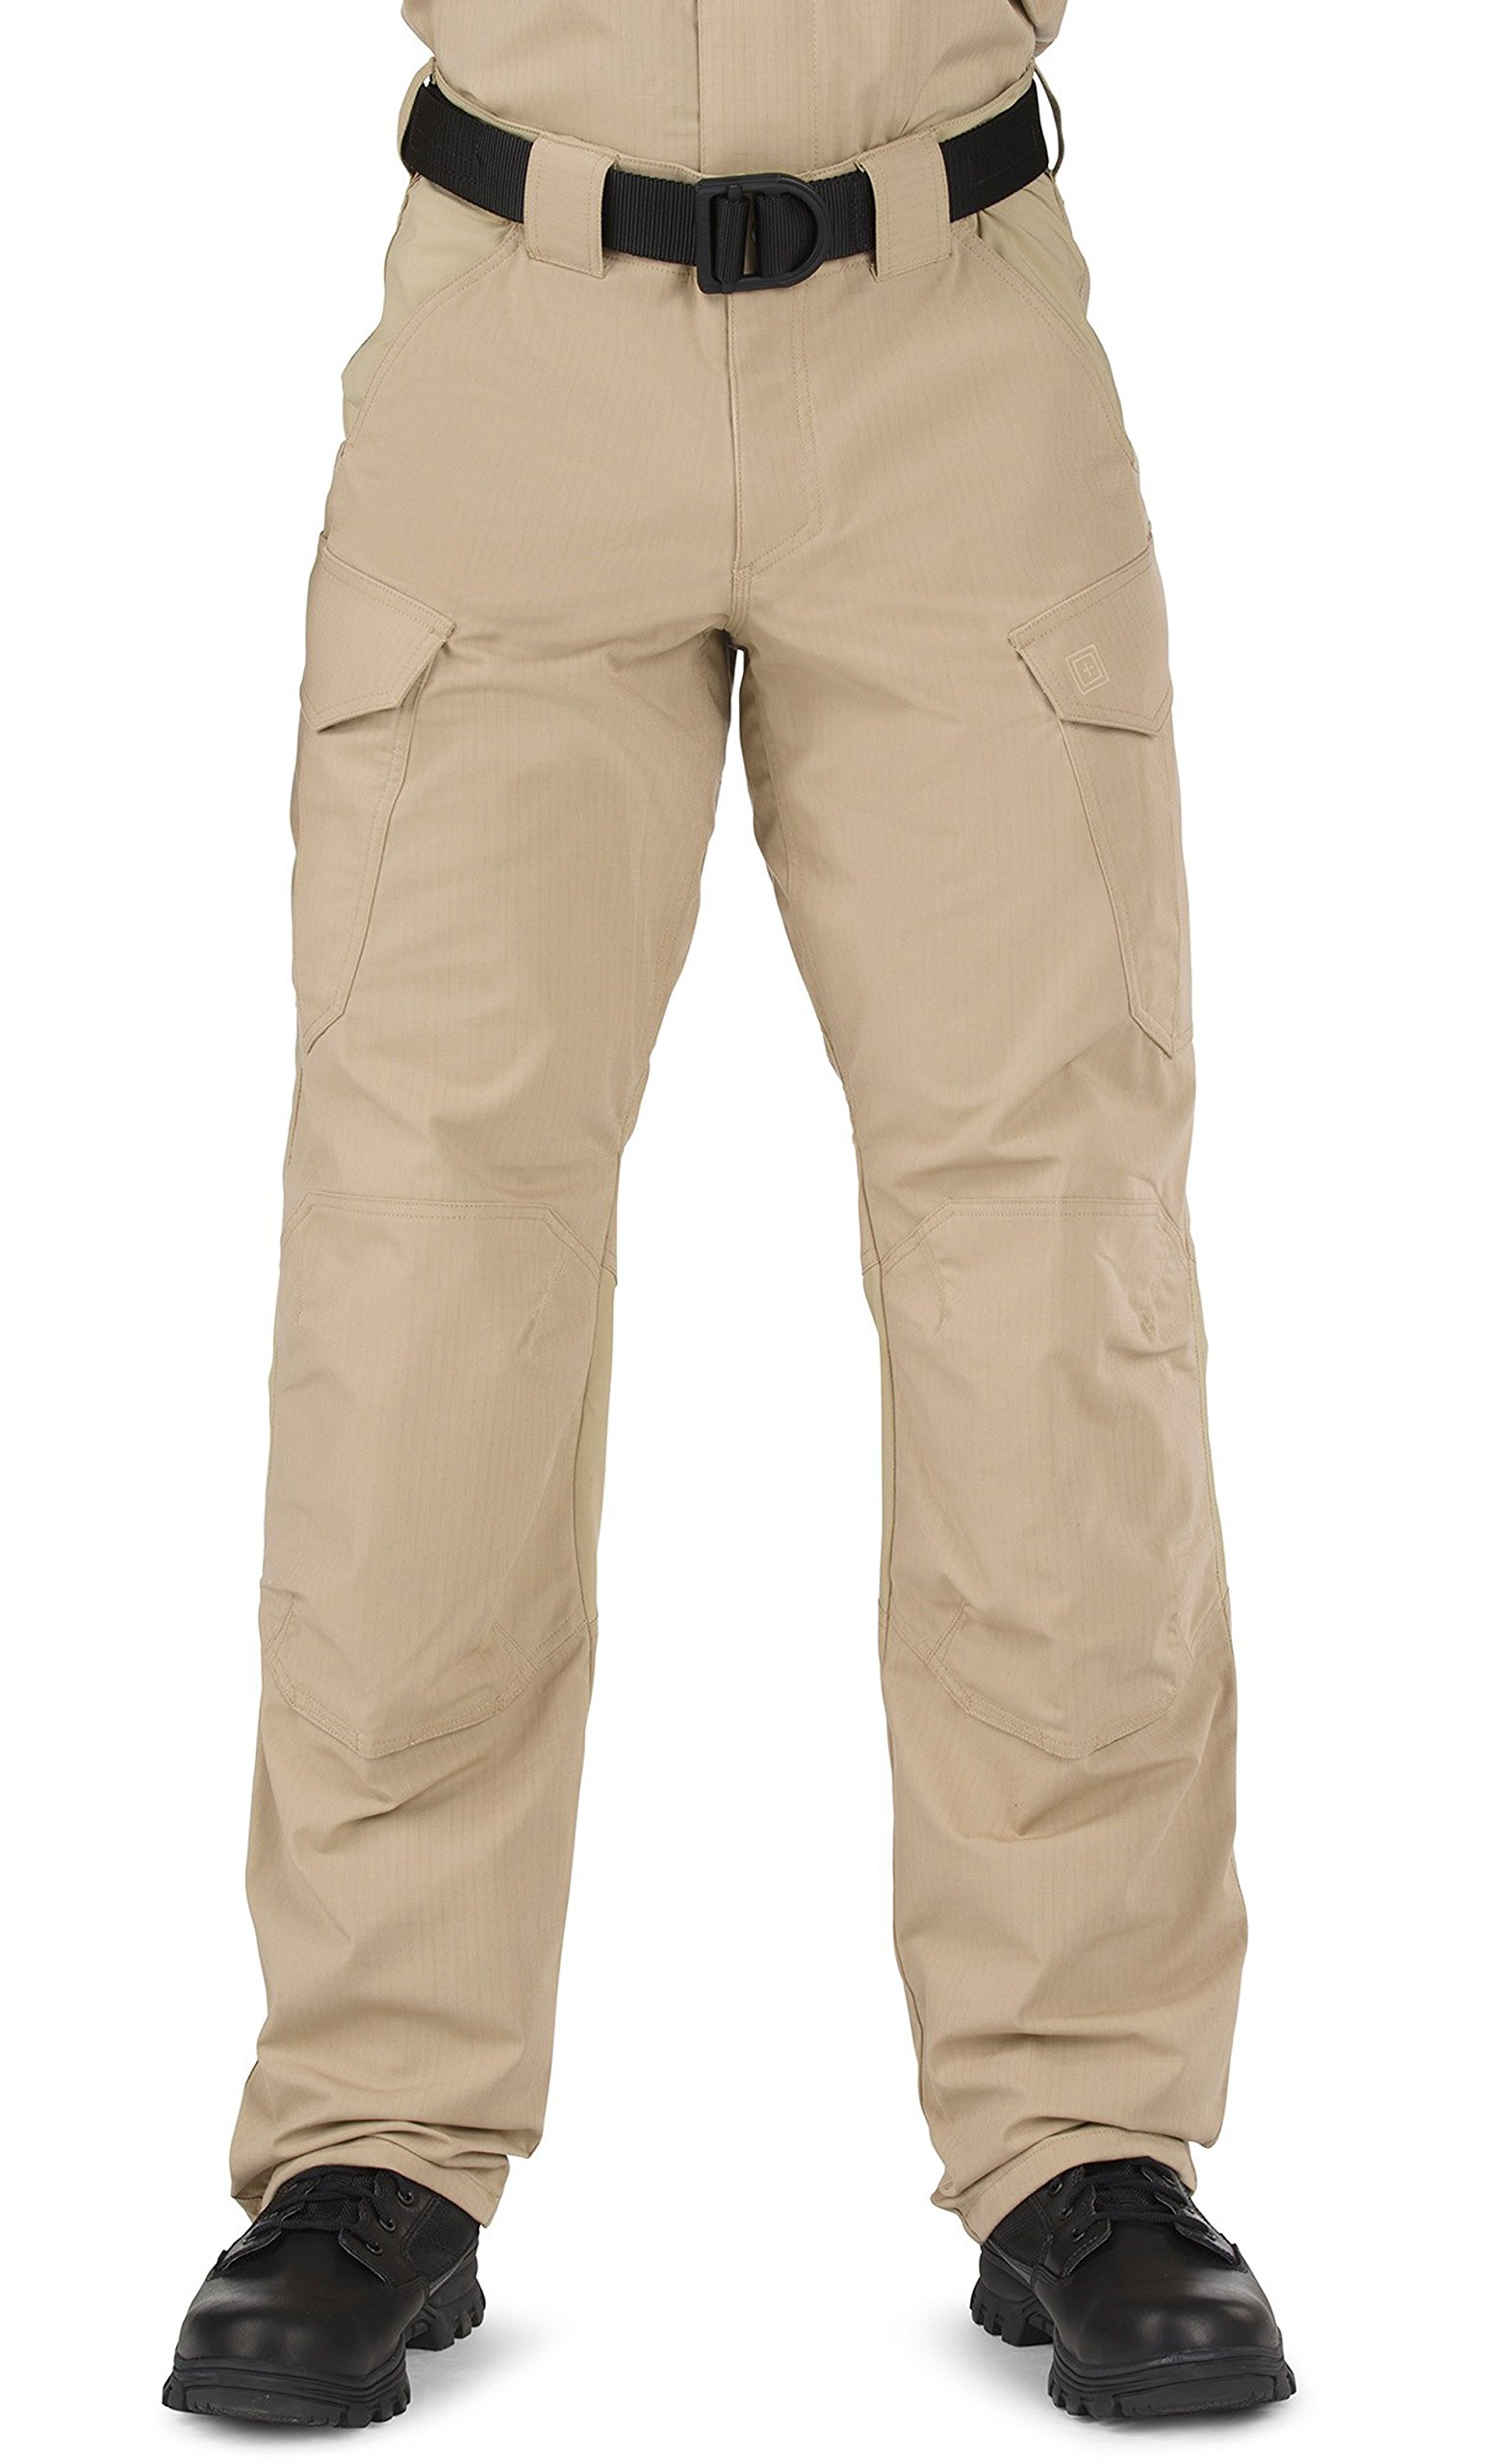 5.11 Men's Stryke TDU Pants, TDU Khaki, 38-Waist/32-Length